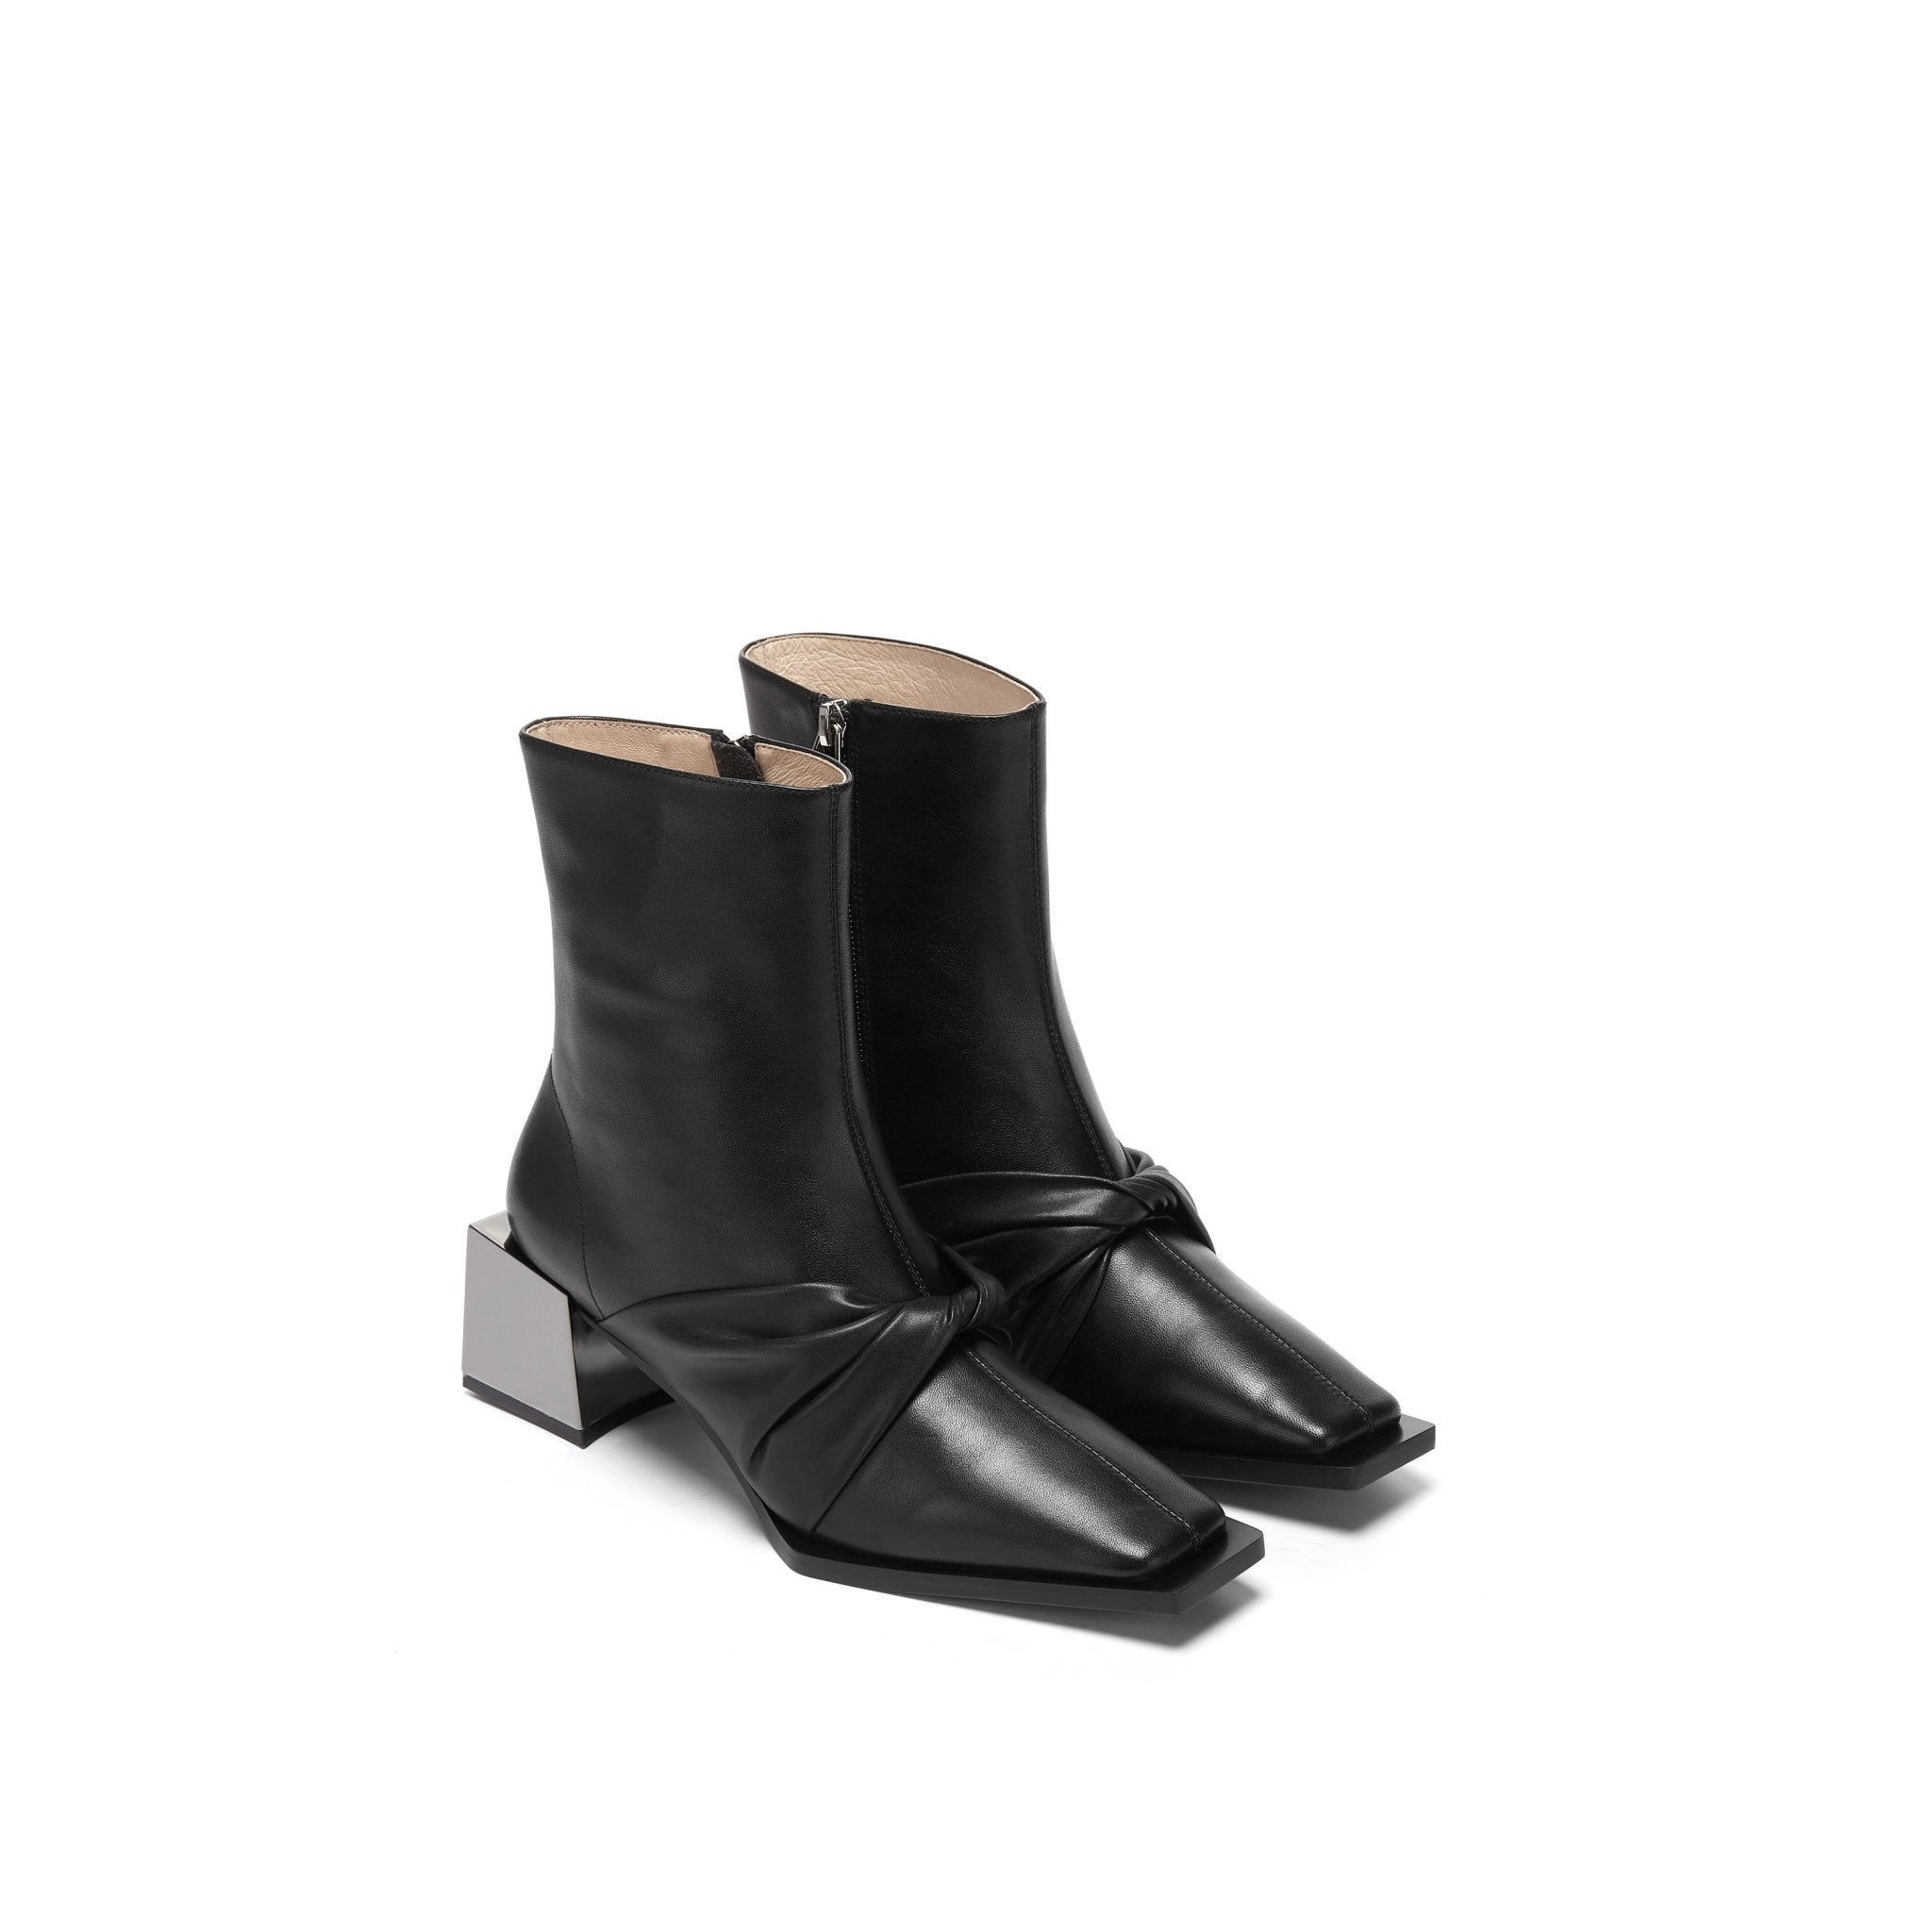 LOST IN ECHO Black Metal Toe Lambskin Boots | MADA IN CHINA